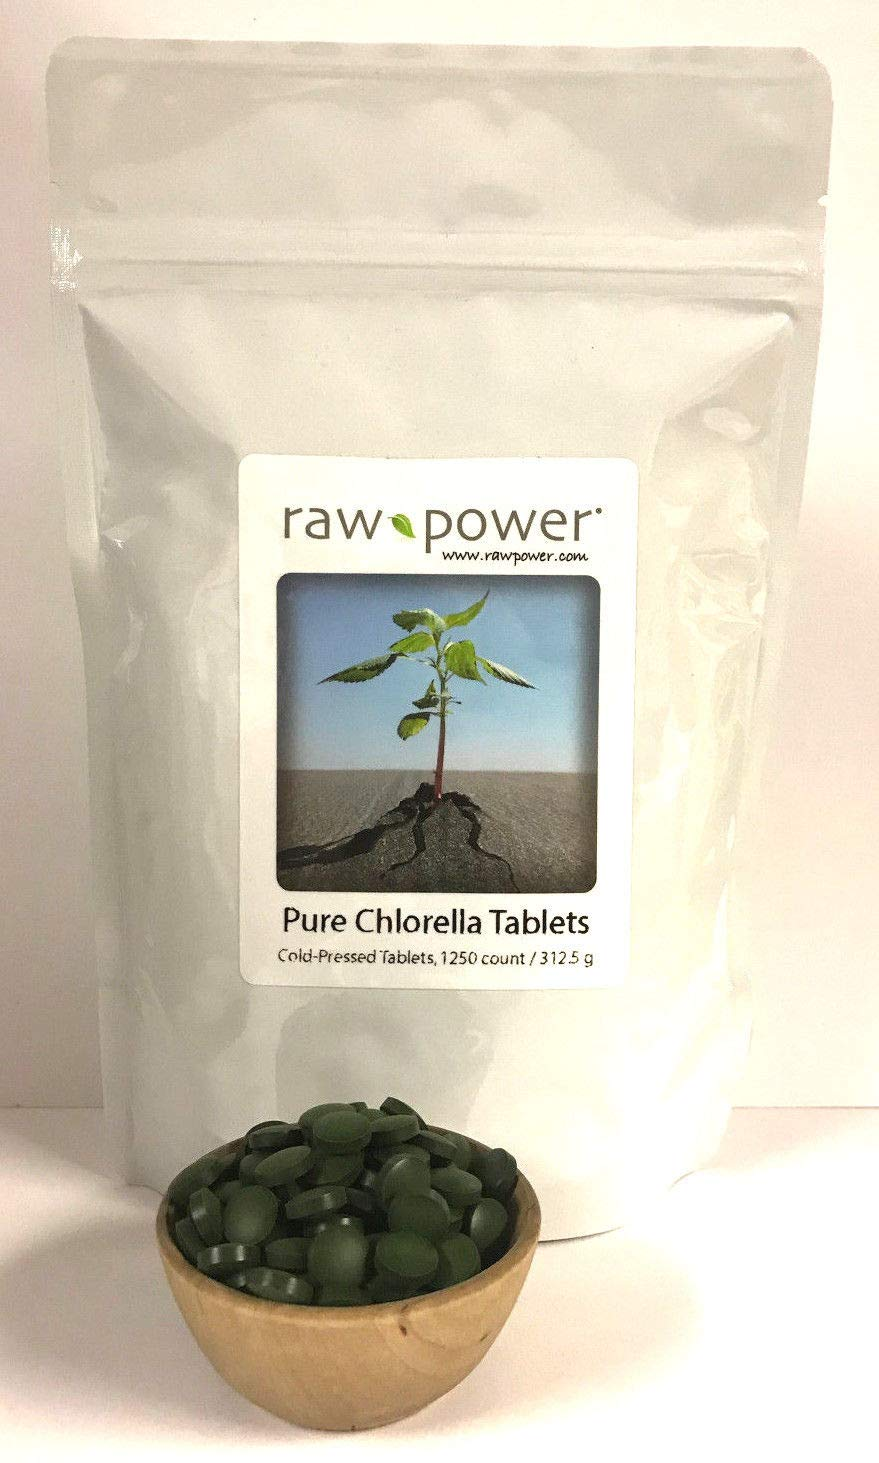 Chlorella Tablets 1250 Count, 312.5g , Cold-Pressed, Raw and Pure, from Raw Power Organics